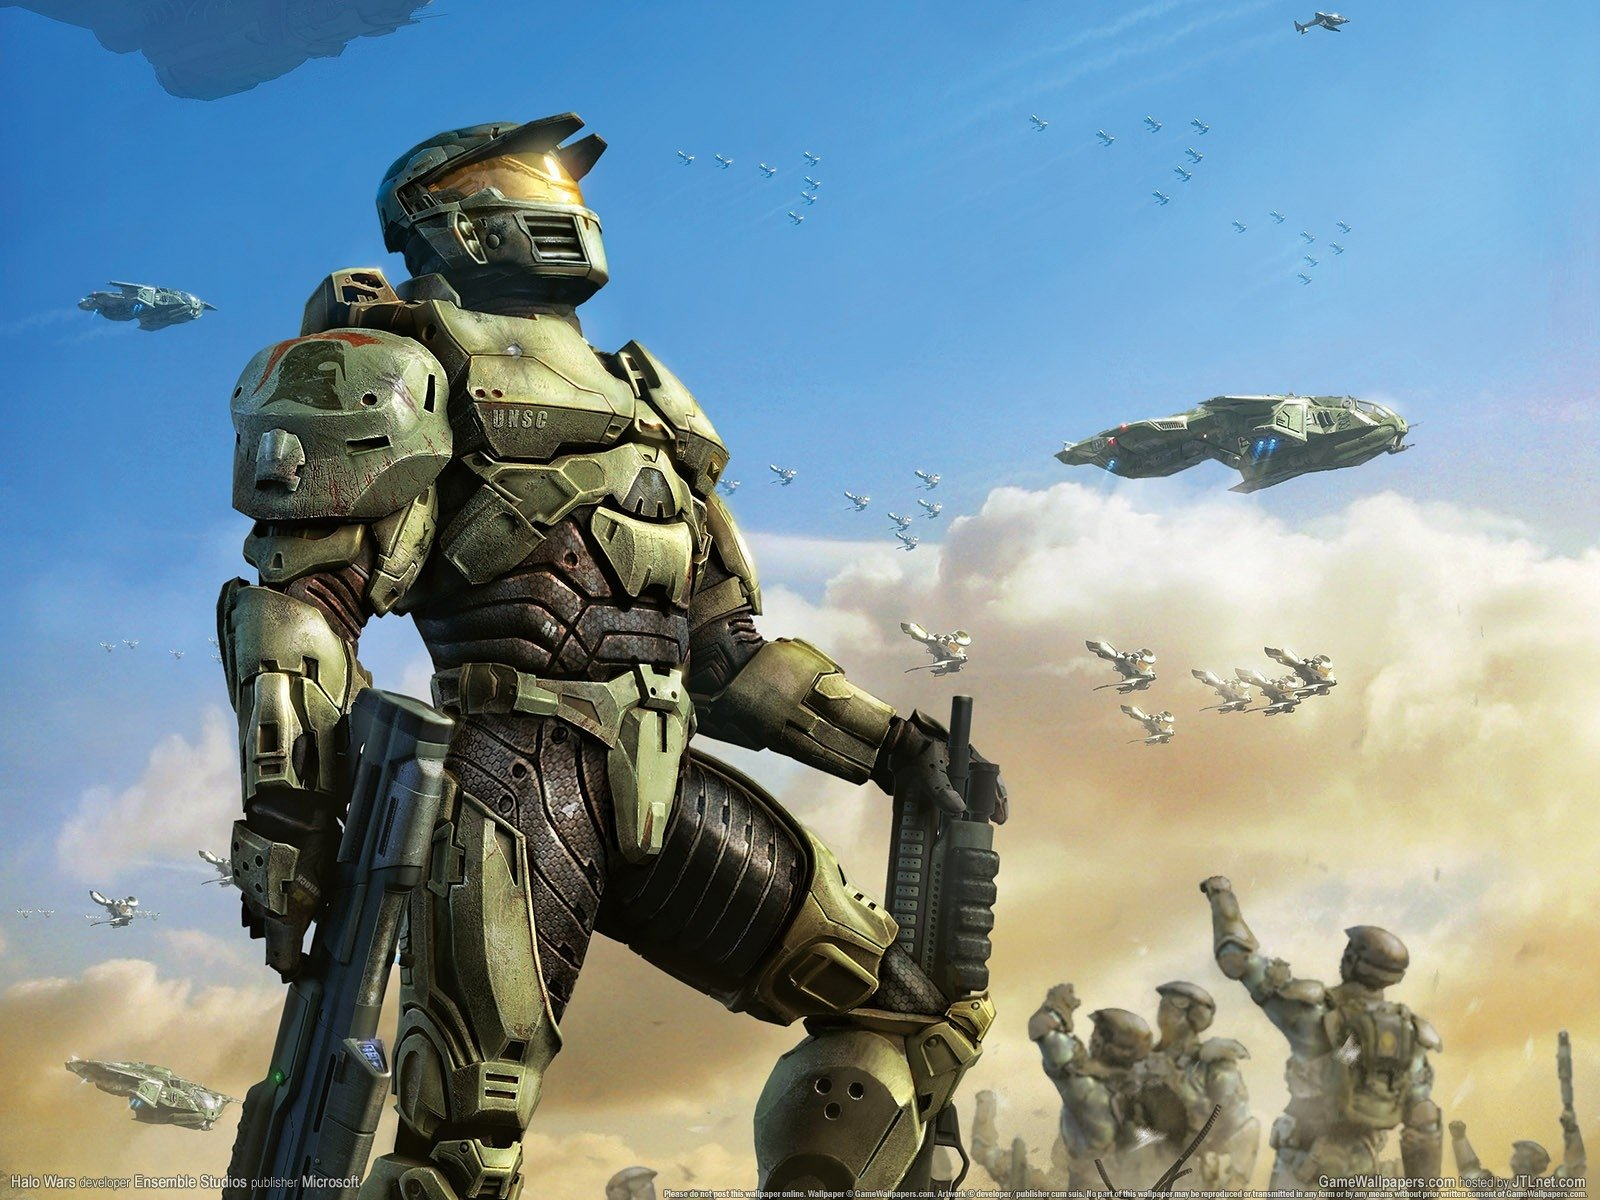 halo wars wallpaper and background image | 1600x1200 | id:309135